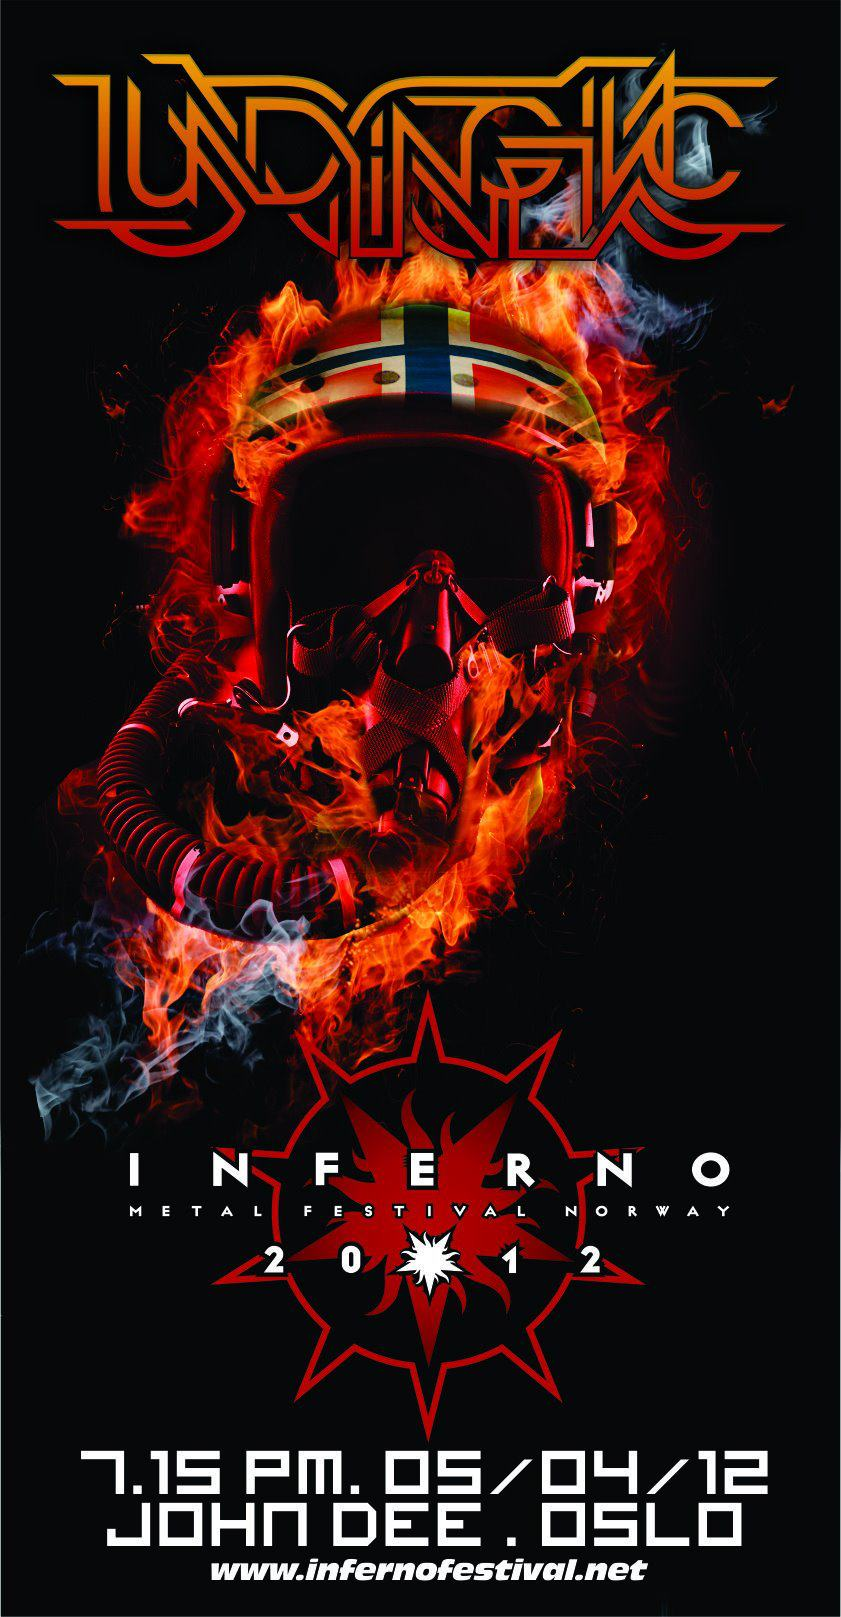 Inferno Festival Norway